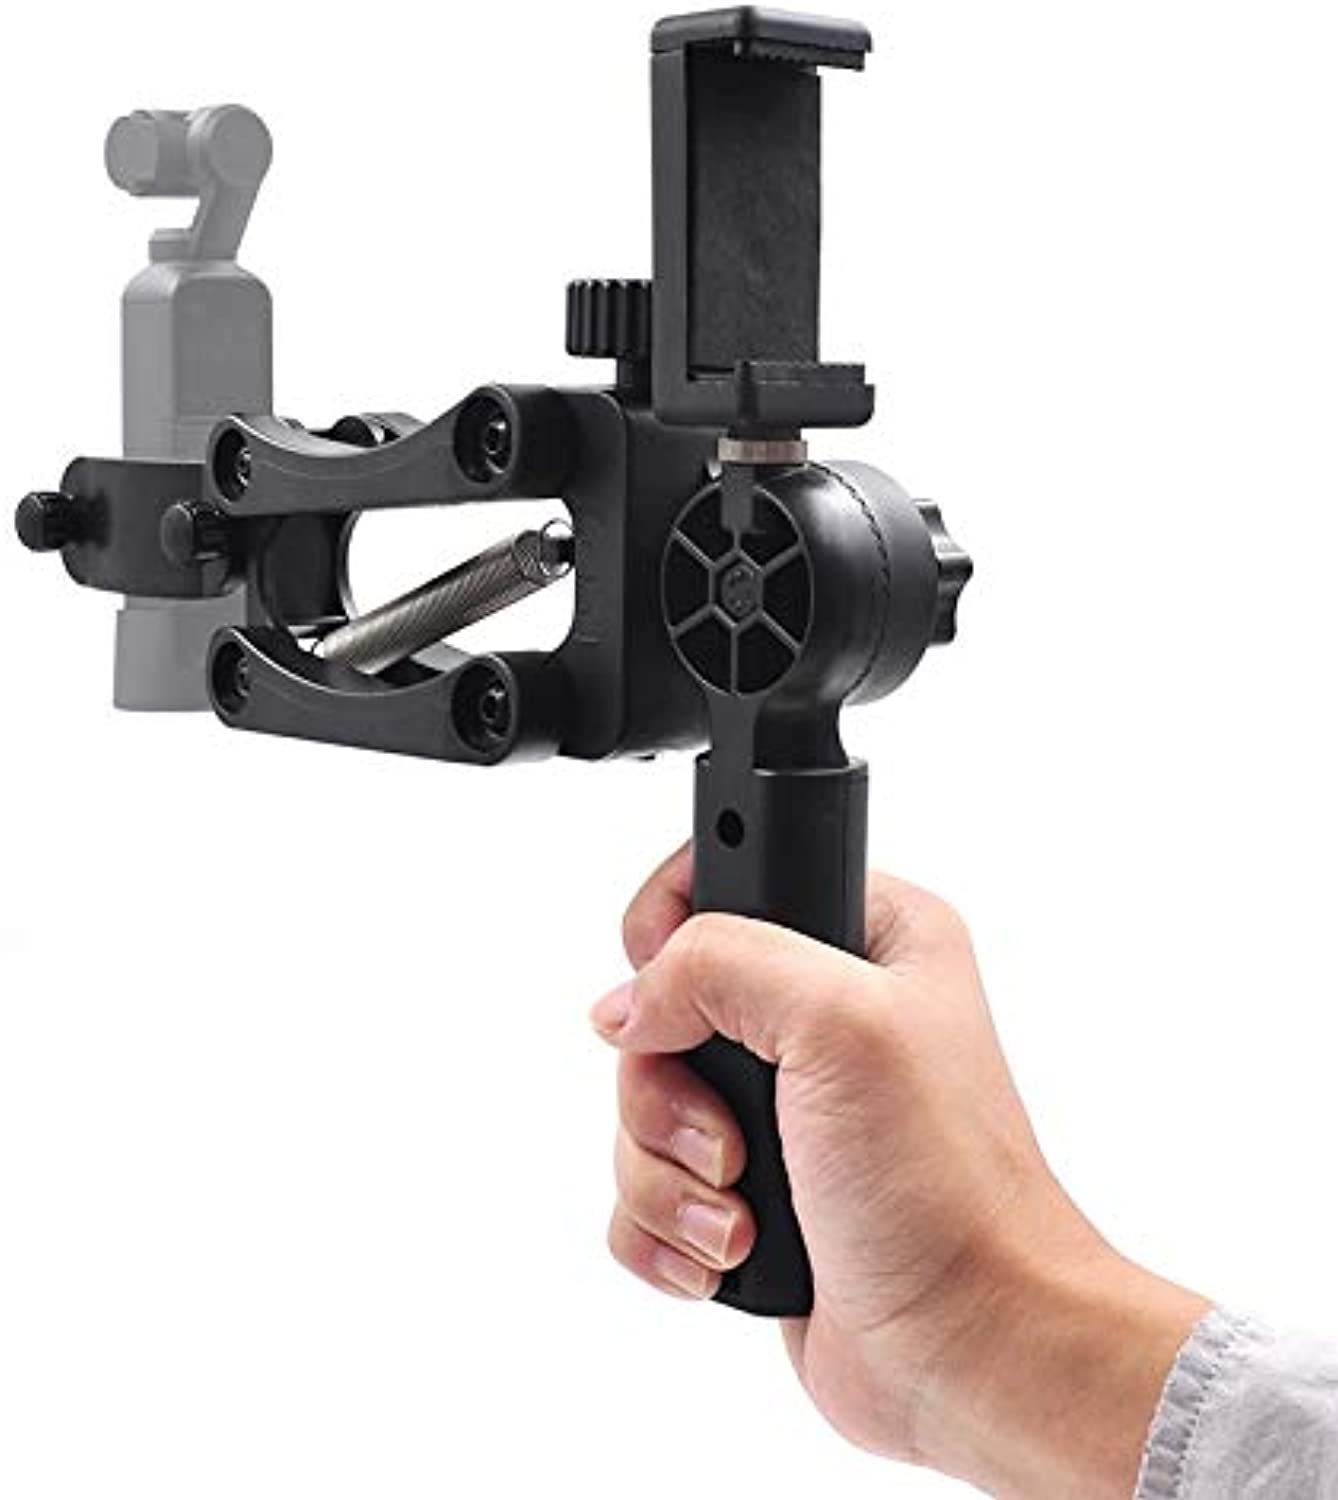 For DJI OSMO Pocket, 4-axis Stabilizer Single Hand-held Anti-Shake Stabilization Shock Absorber Bracket for DJI Osmo Pocket Camera